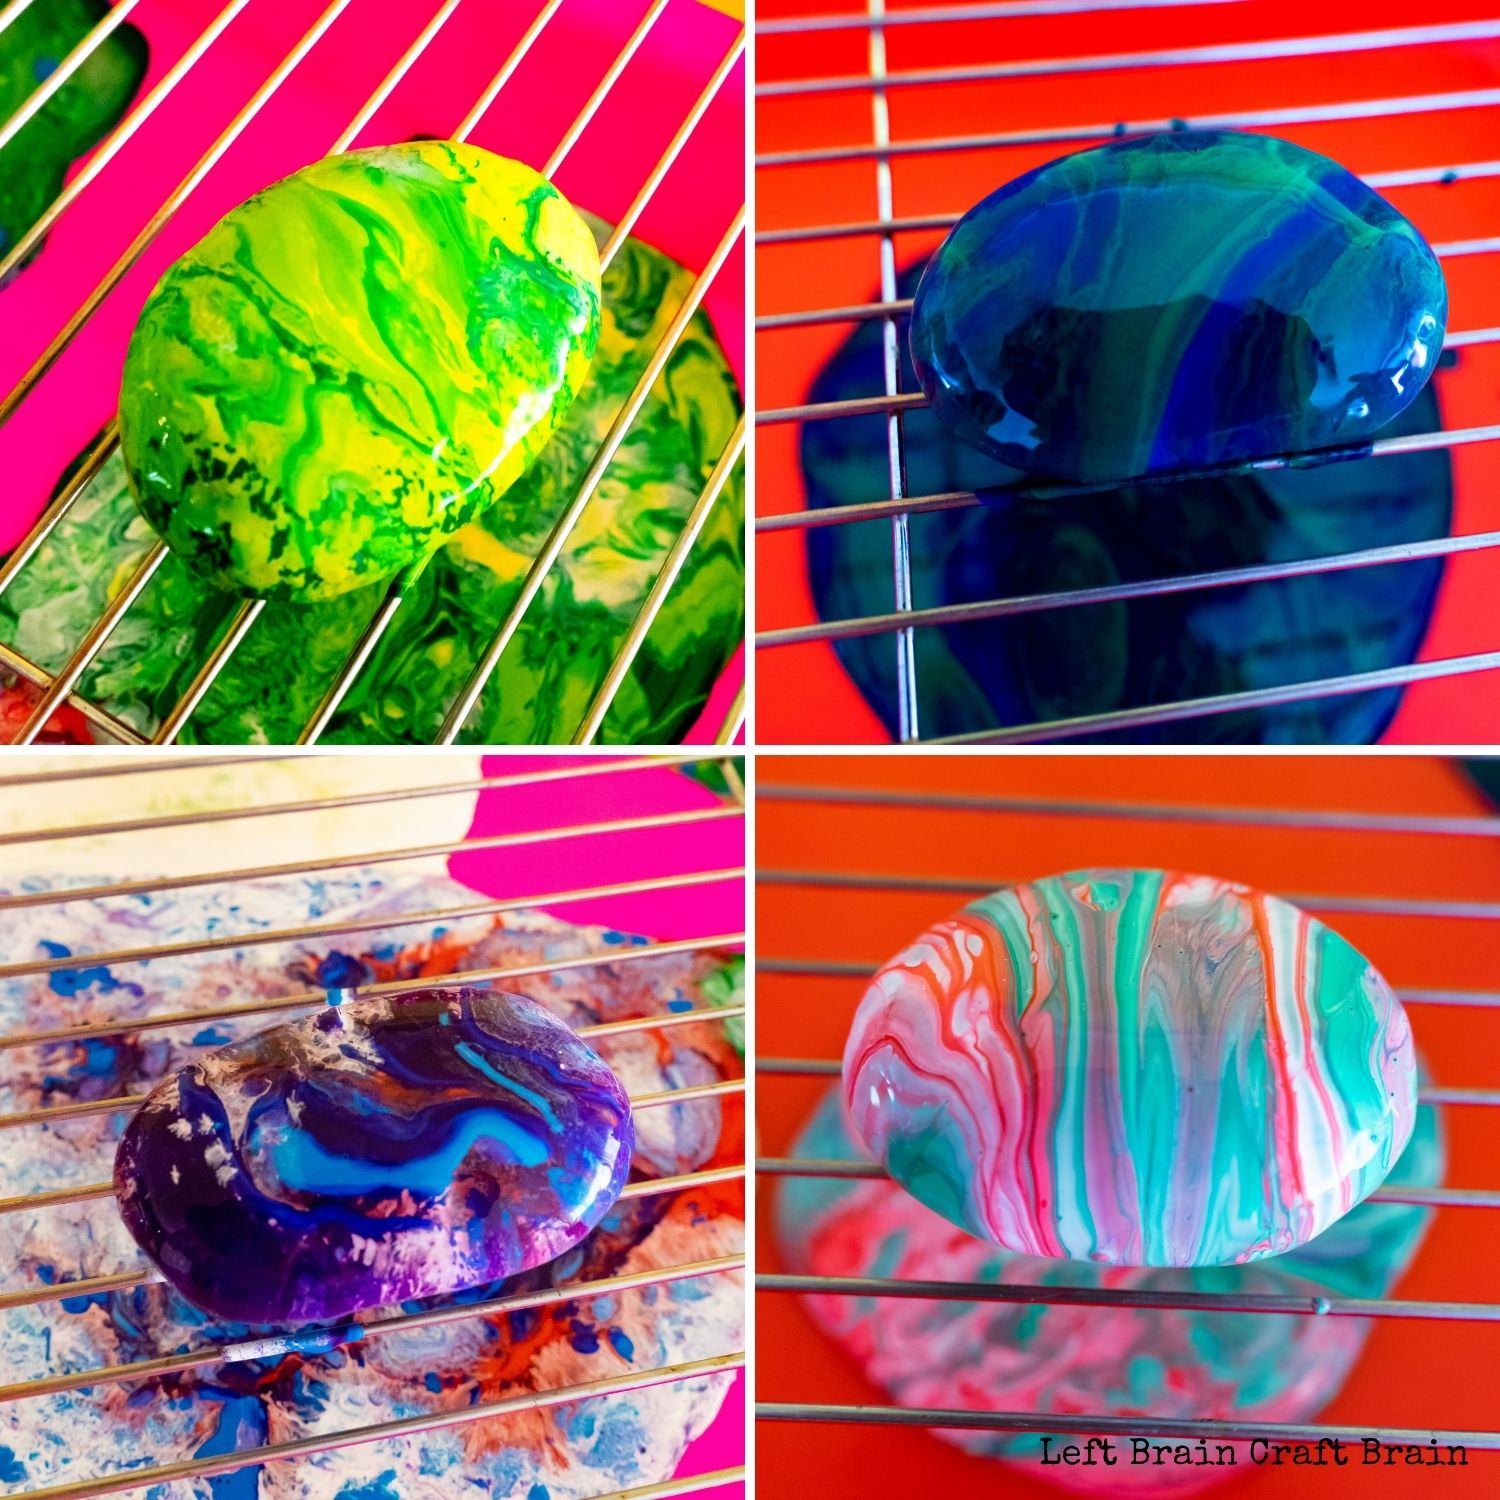 4 swirled pour painted rock garden markers one yellow and green, one blue and green, one white, blue, red, purple, one white, red and green